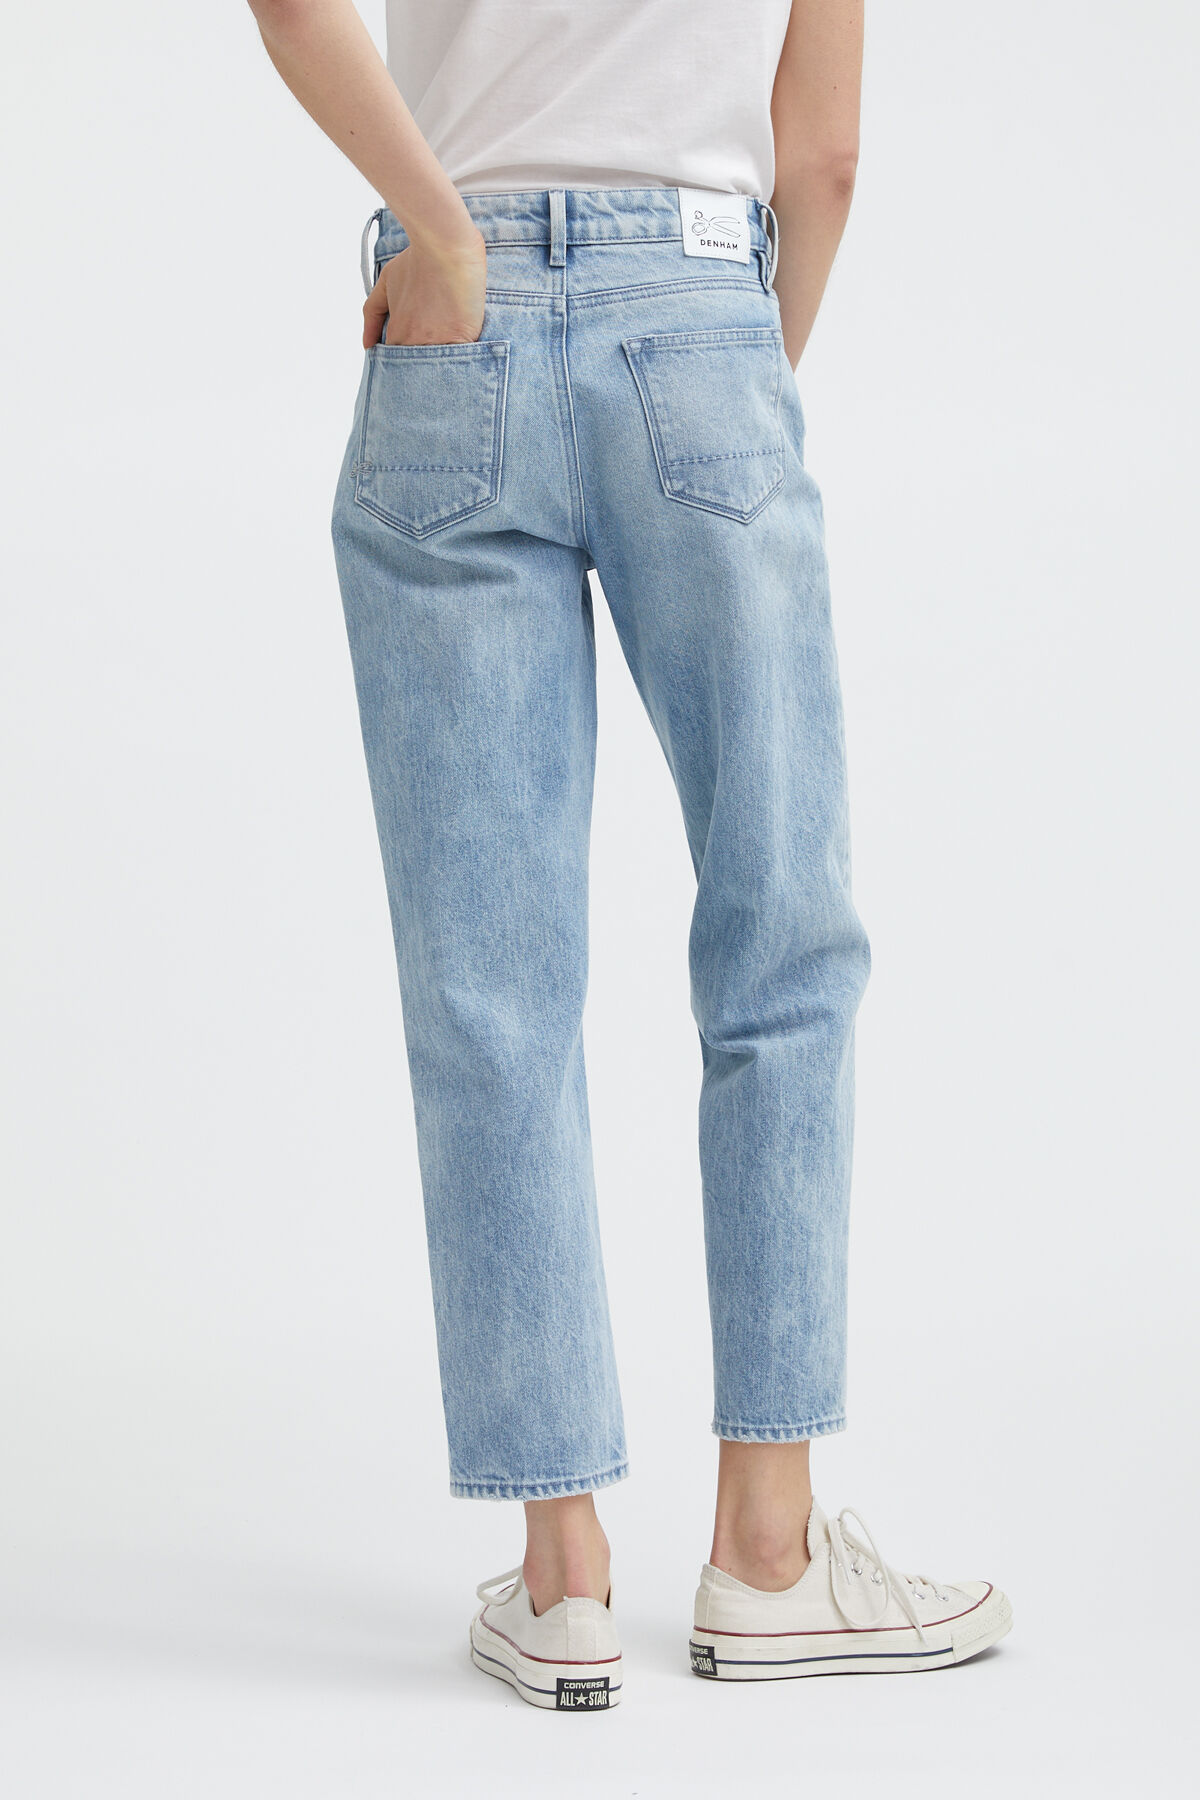 Bardot Straight Leg - Straight Fit Jeans - Detail